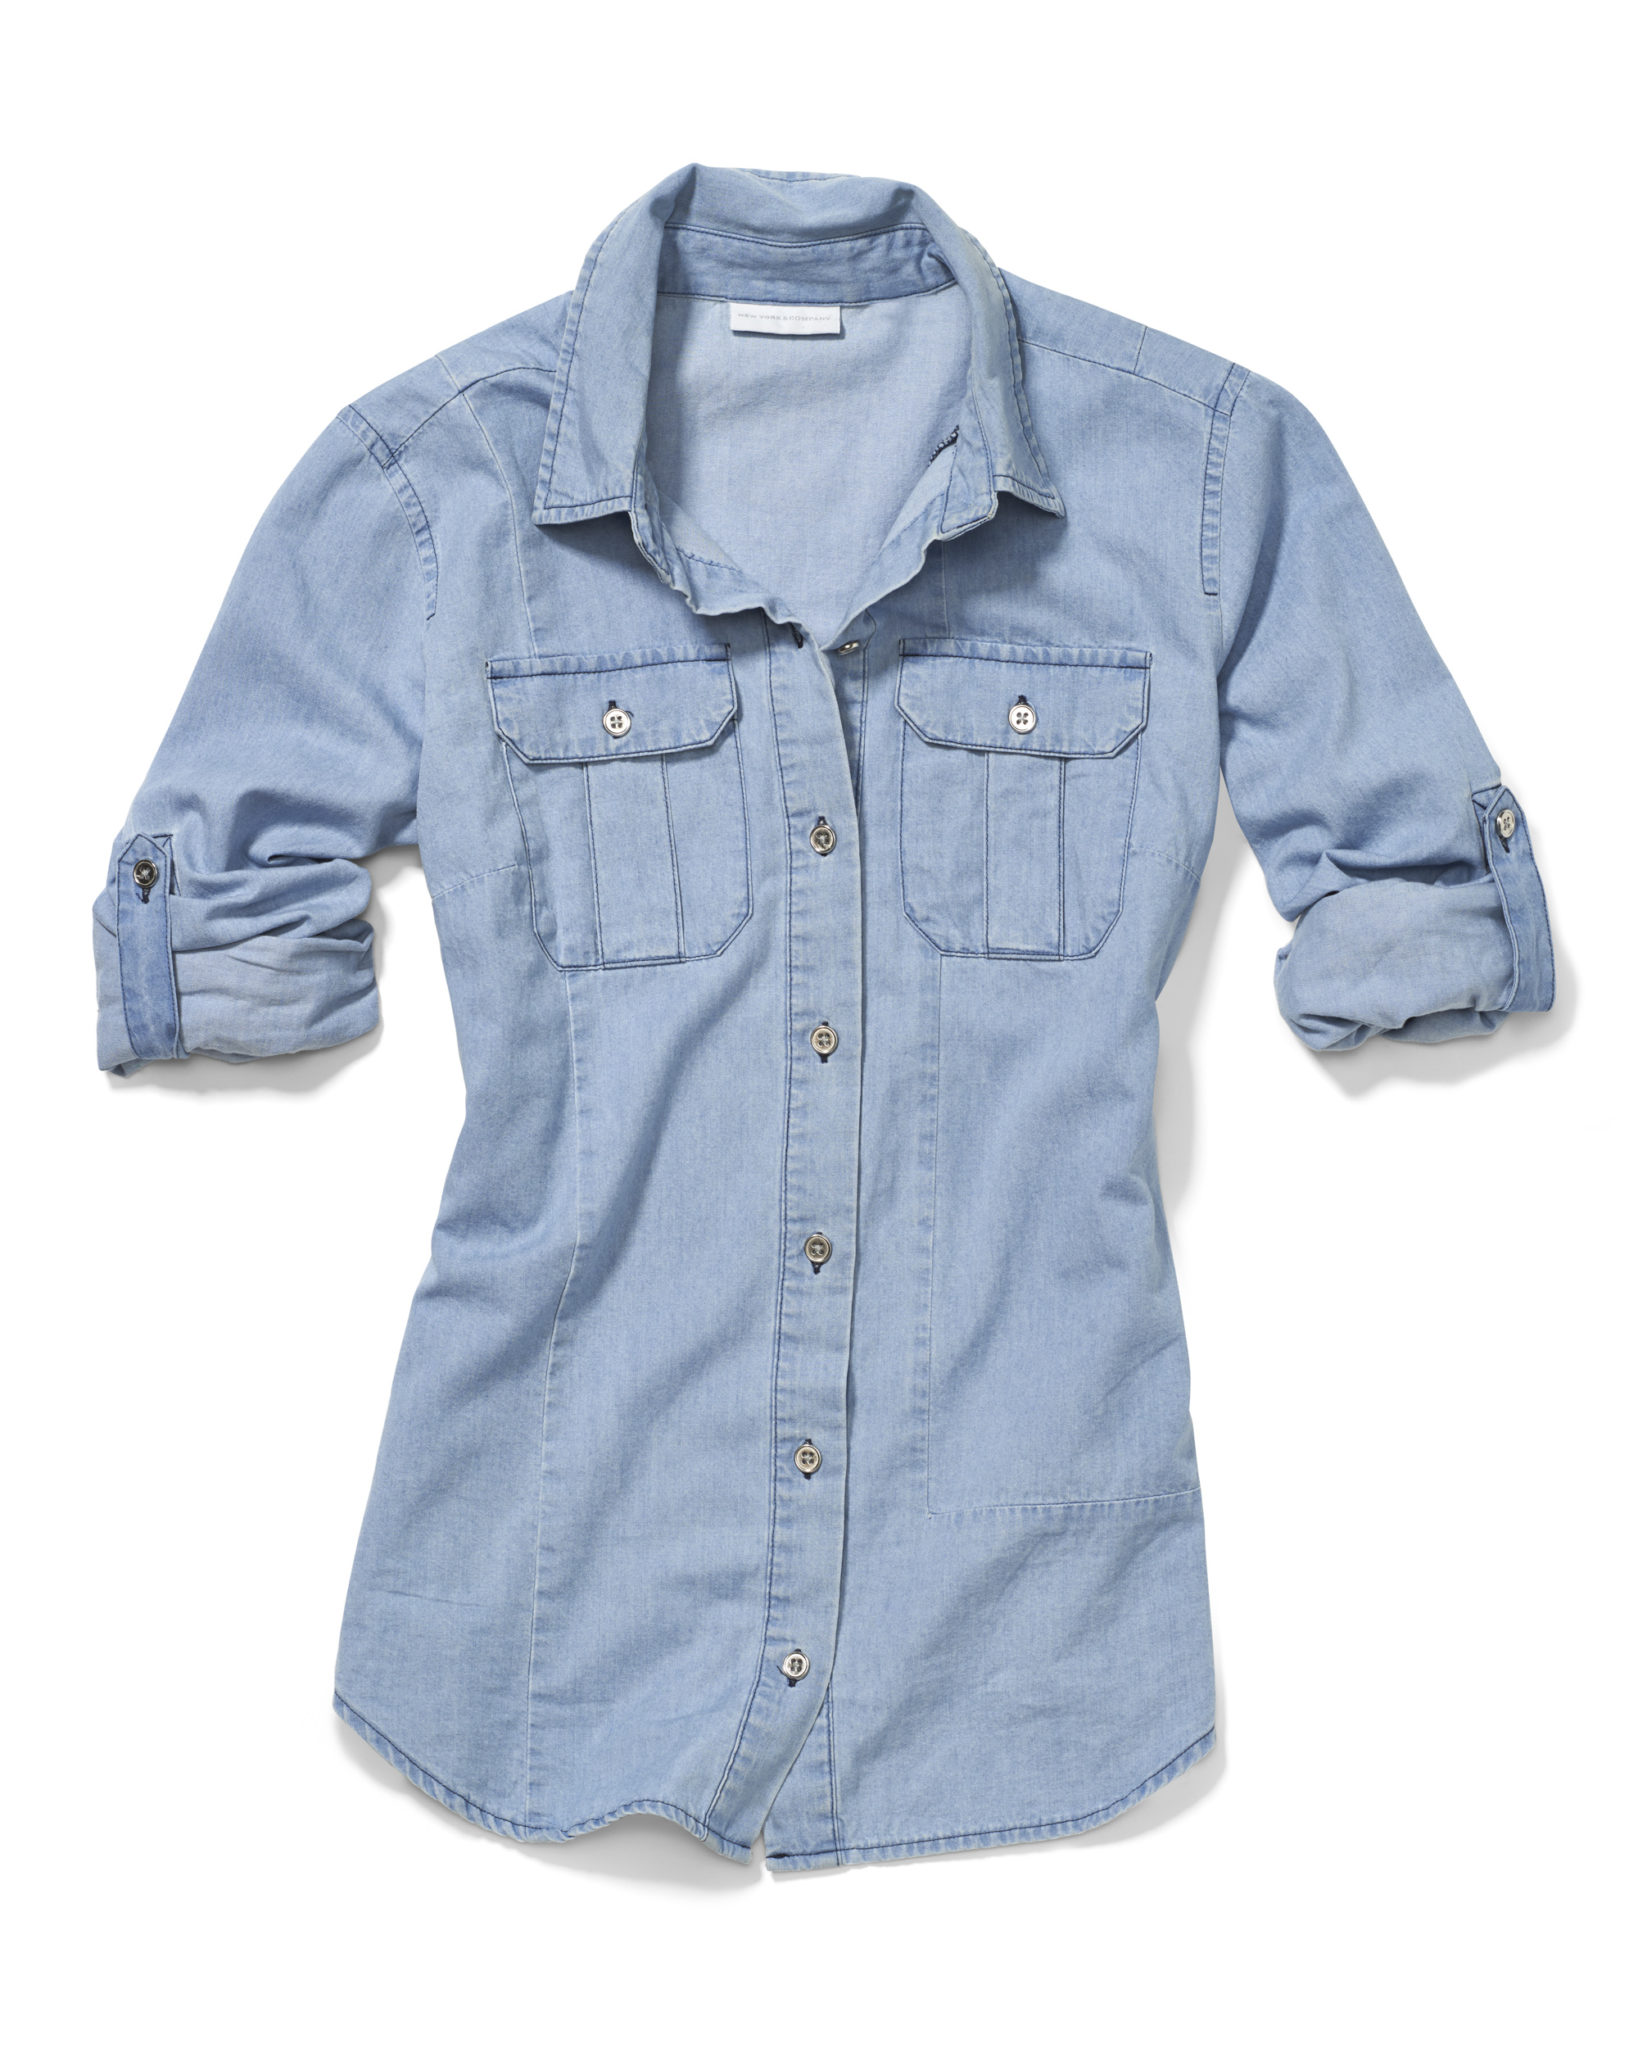 a product photograph of a denim shirt with soft styling on white